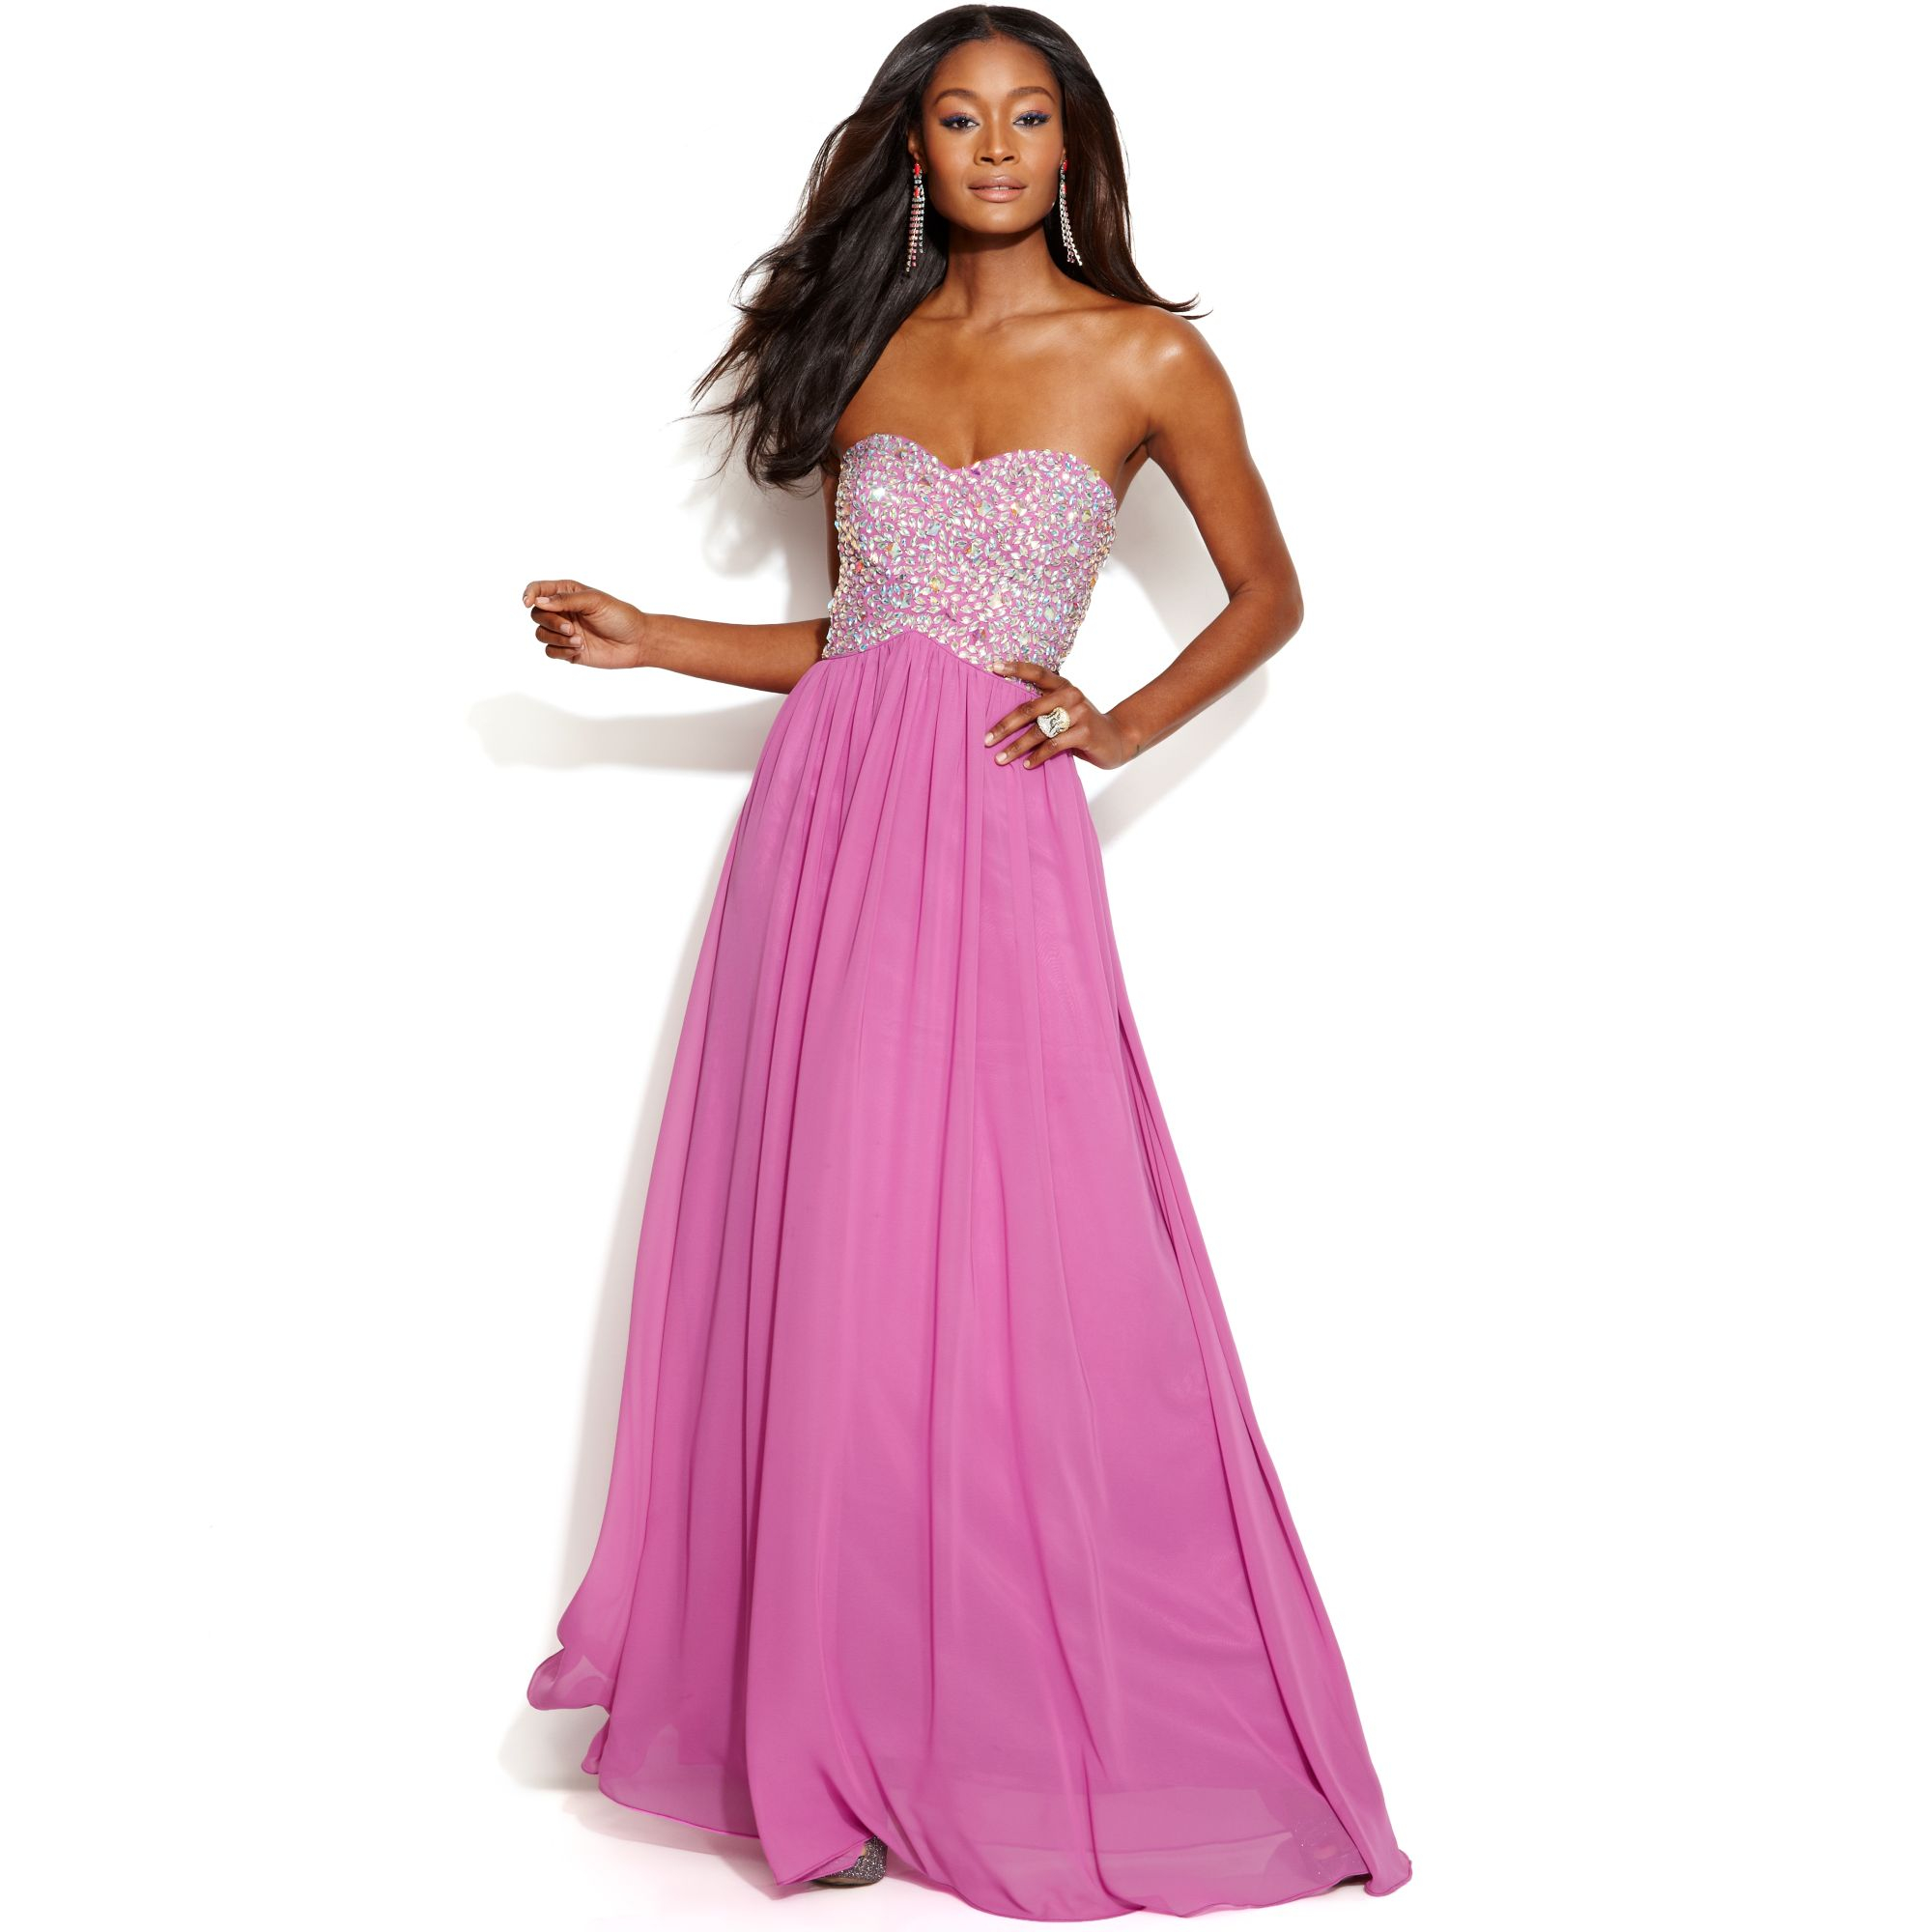 Embellished Bodice Strapless Wedding Gown: Xscape Strapless Embellished Bodice Cutout Gown In